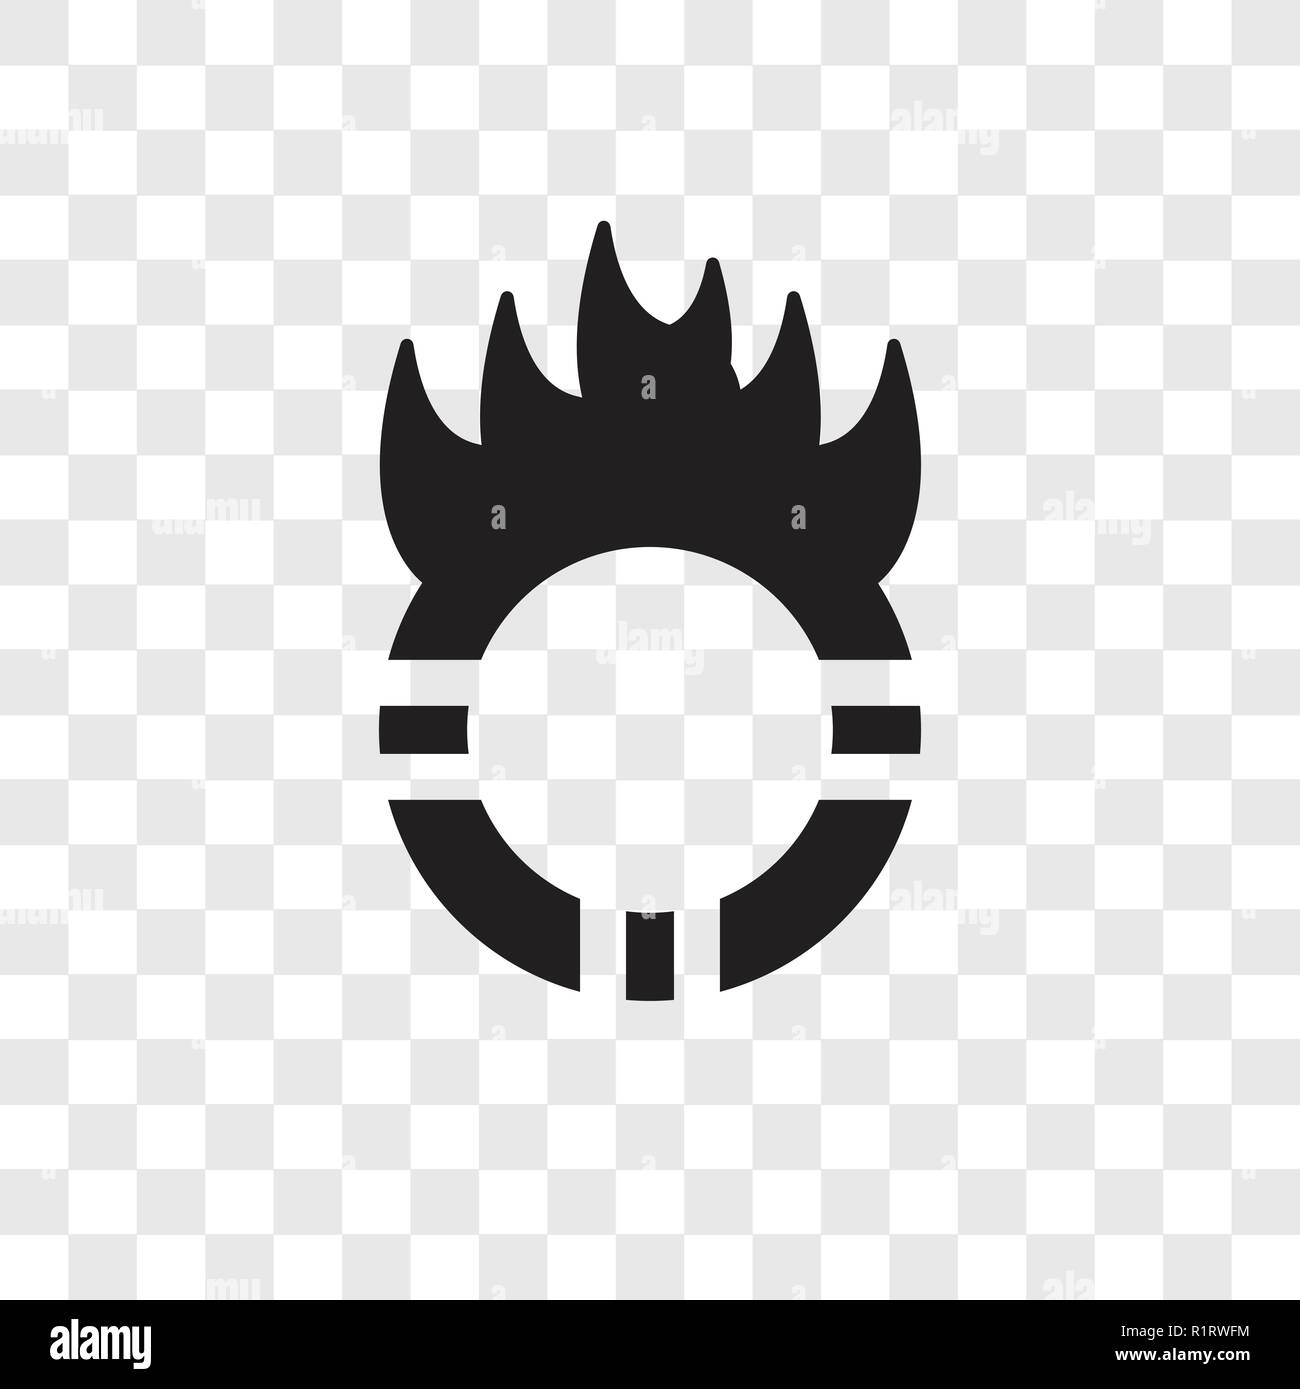 ring of fire vector icon isolated on transparent background ring of fire transparency logo concept stock vector image art alamy https www alamy com ring of fire vector icon isolated on transparent background ring of fire transparency logo concept image224874376 html